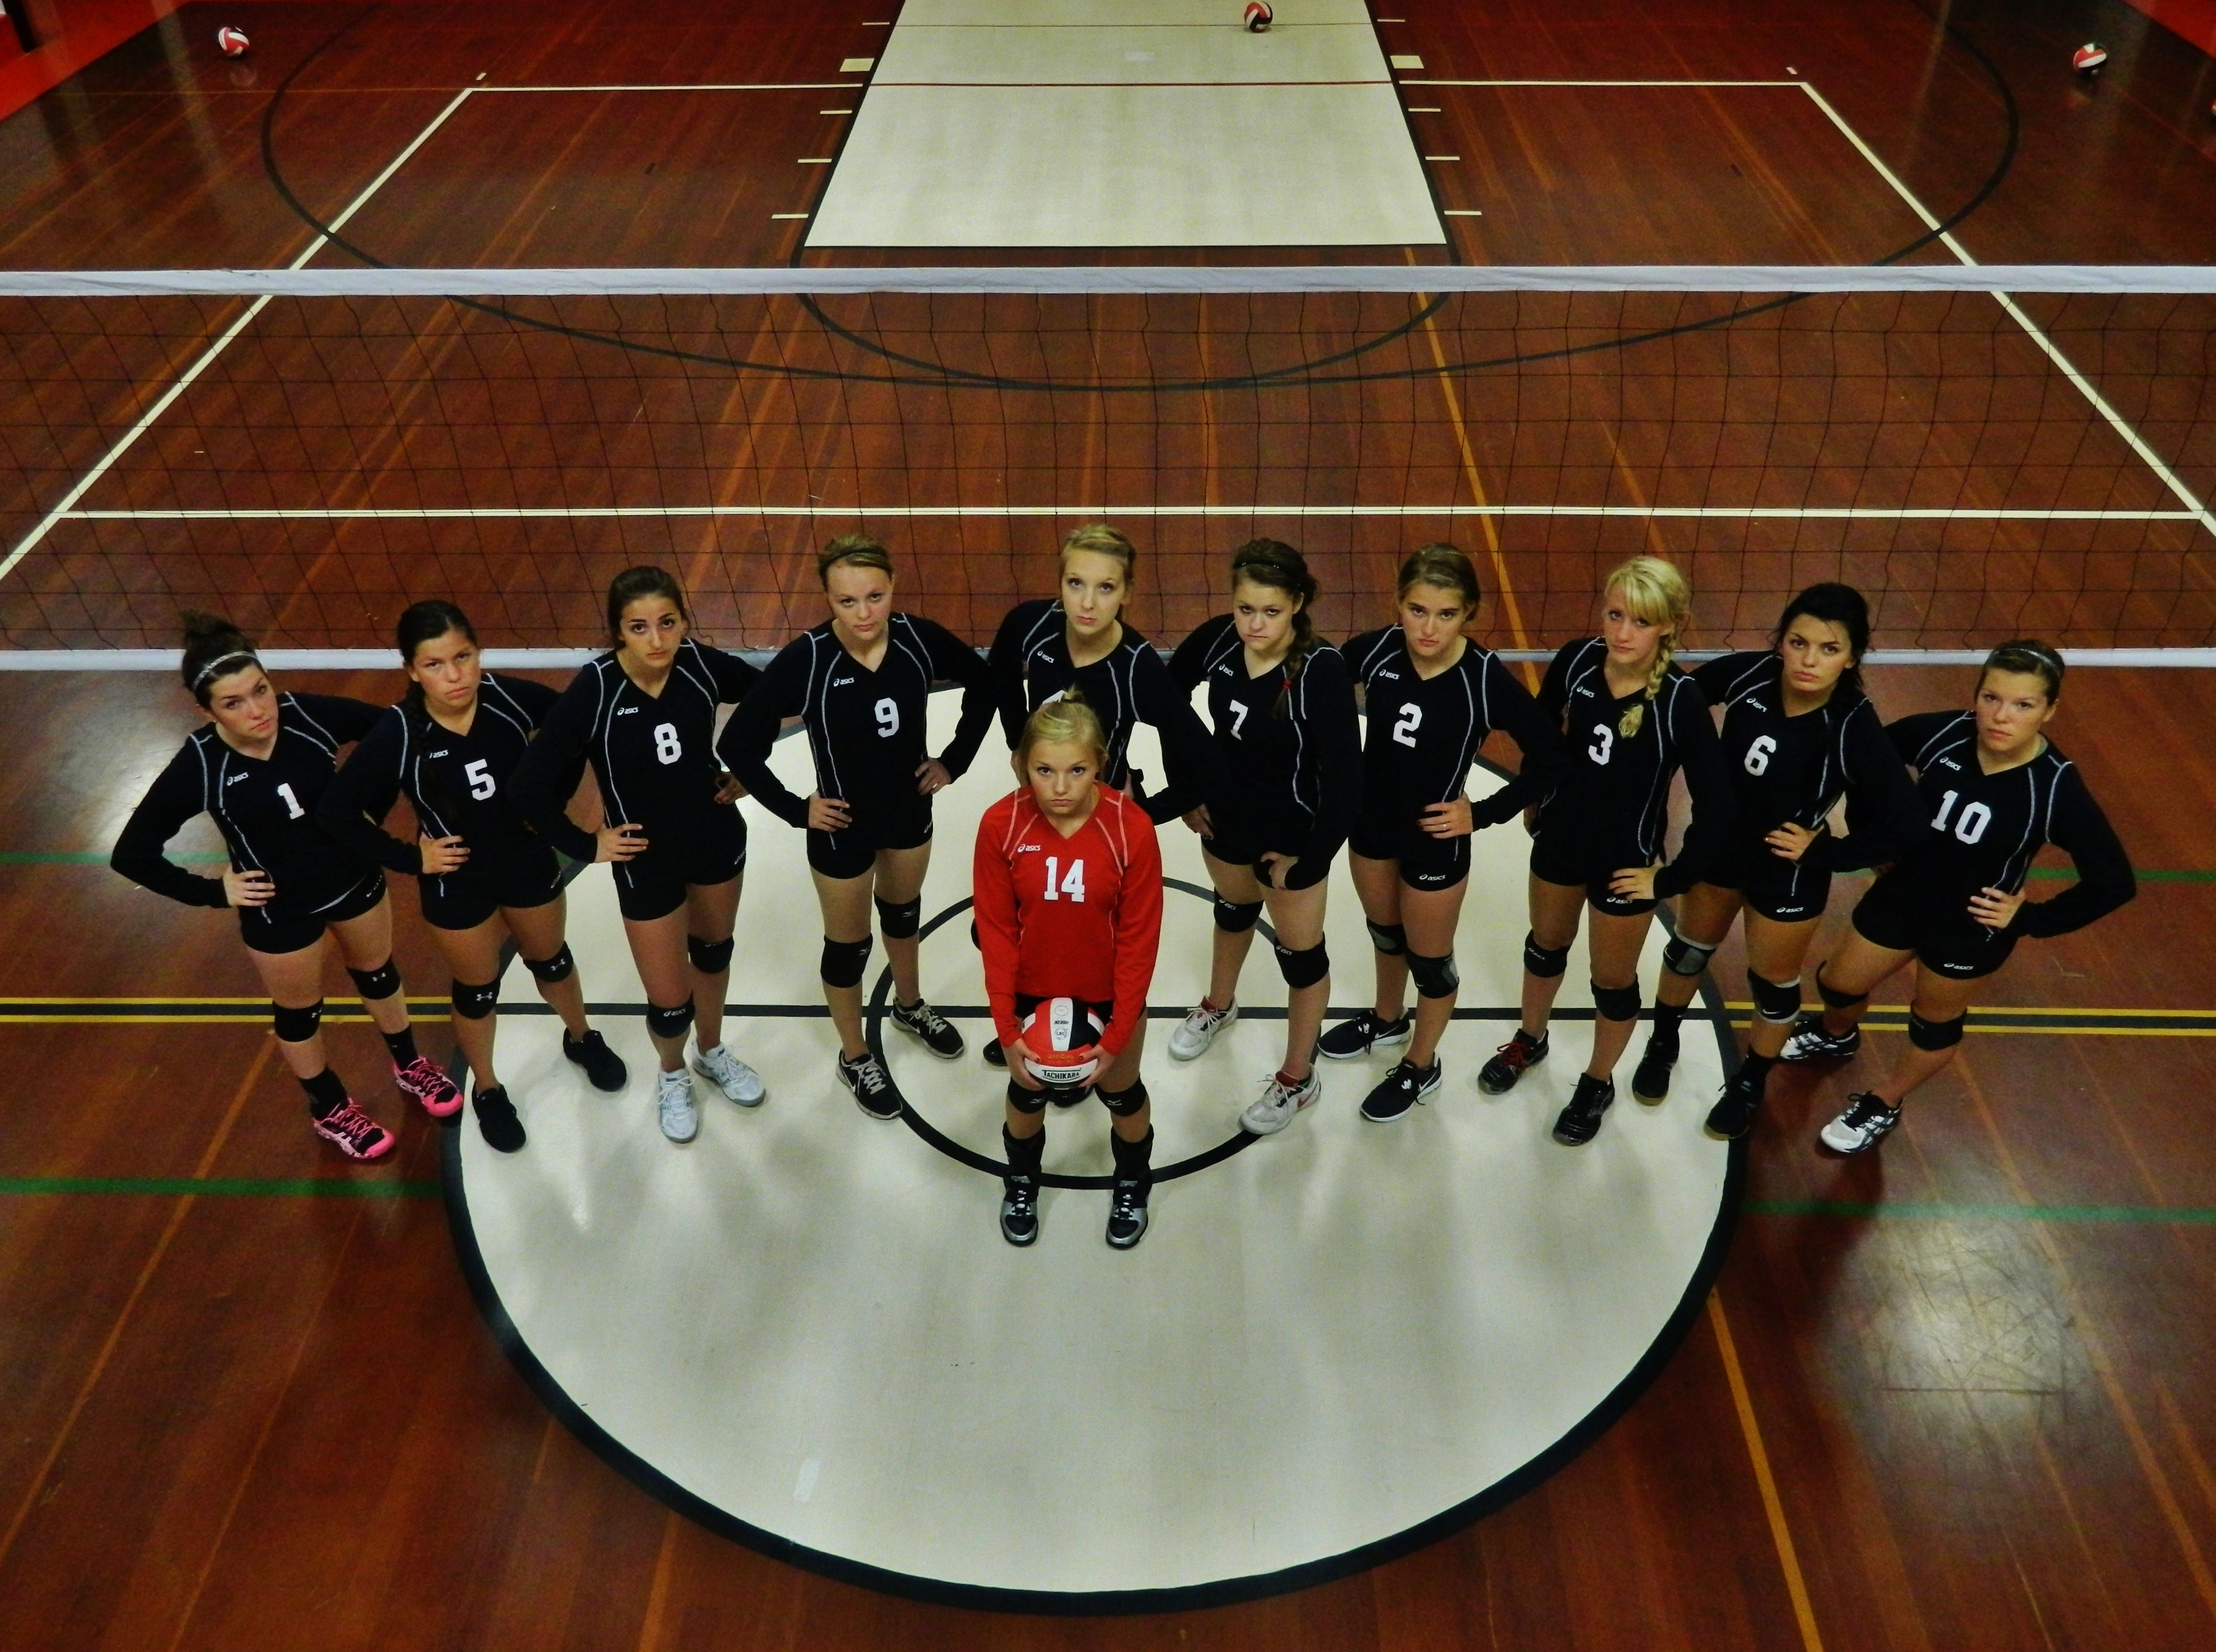 Volleyball Team Picture Pose Ideas Volleyball Team Photos Volleyball Team Pictures Volleyball Pictures